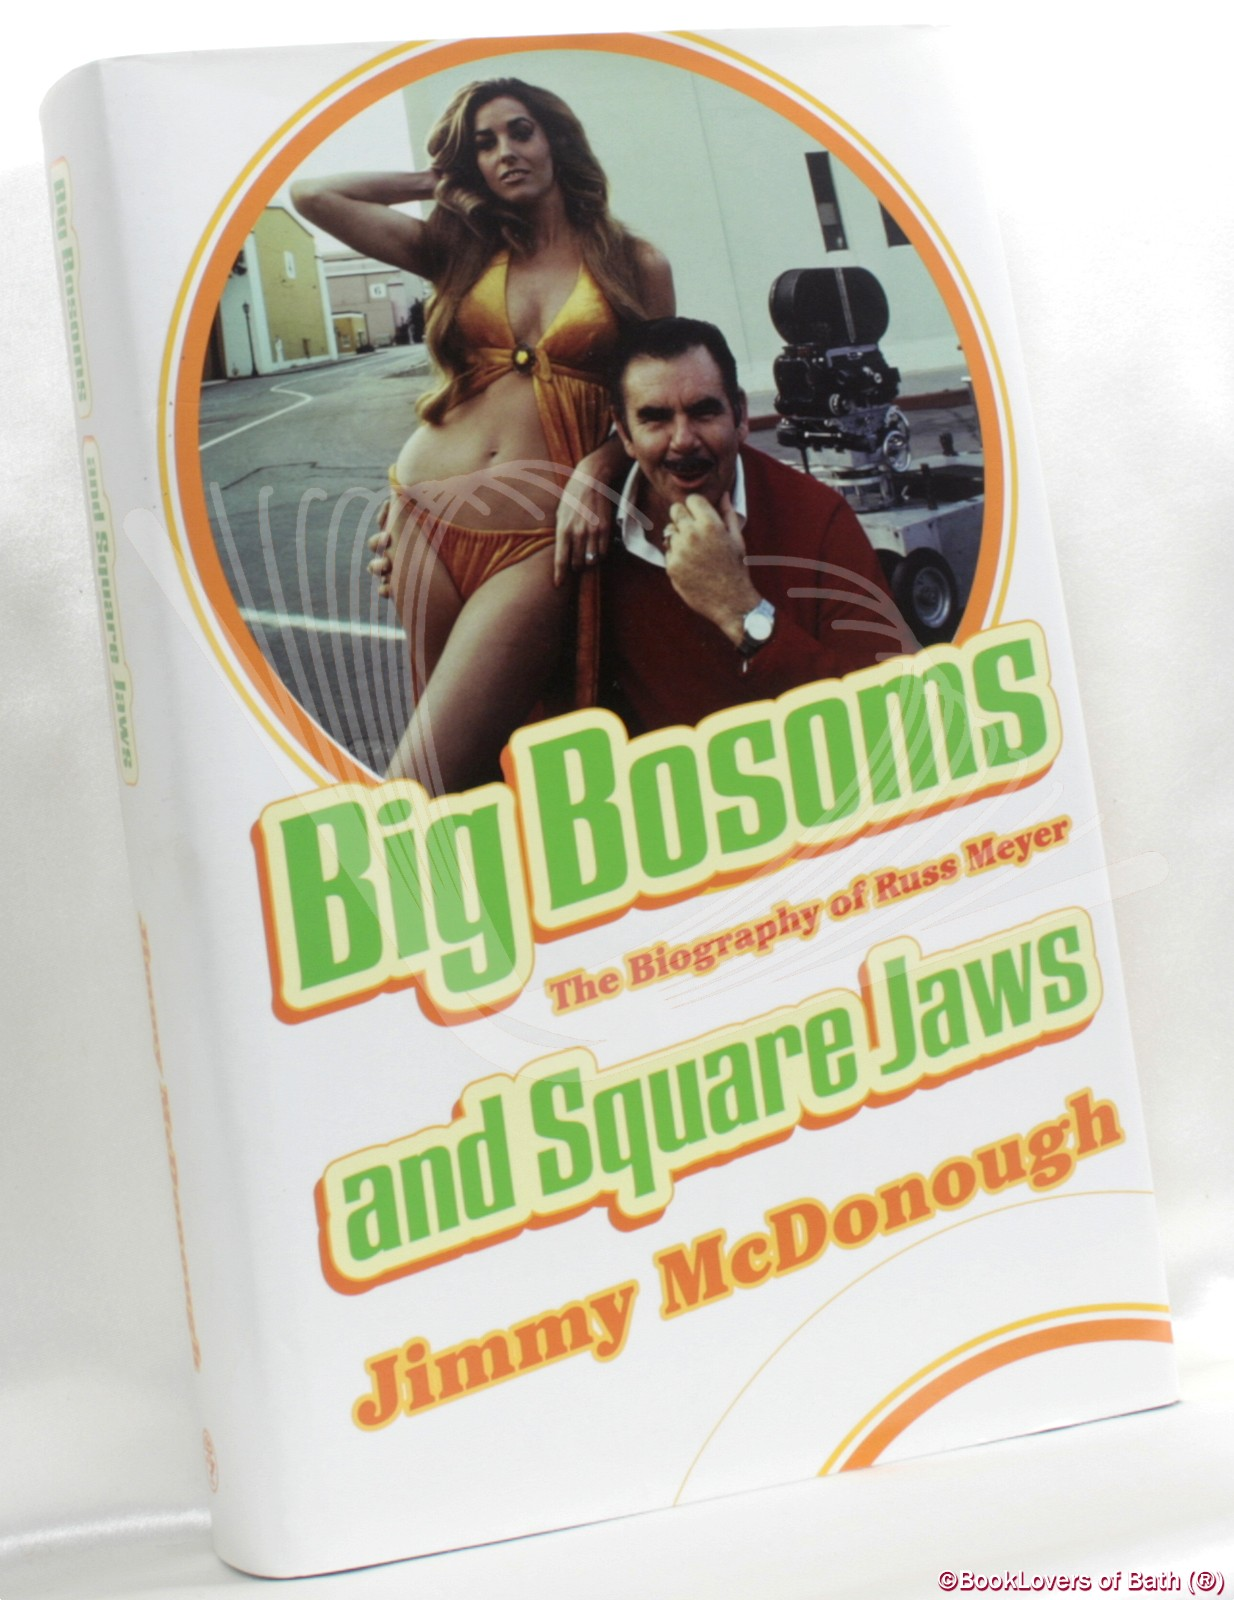 Big Bosoms and Square Jaws: The Biography of Russ Meyer, King of the Sex Film - Jimmy McDonough